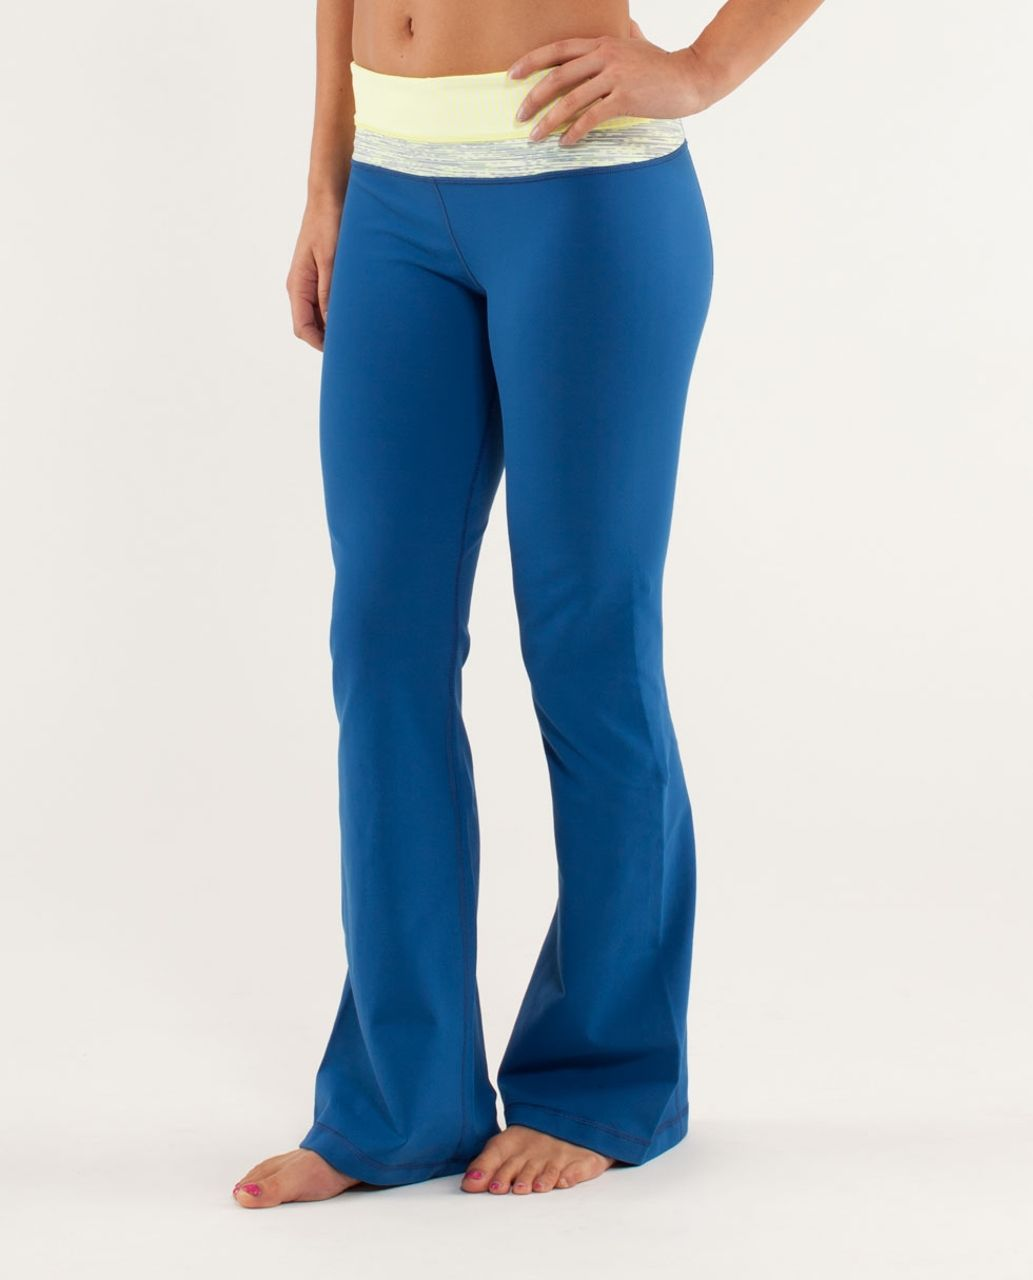 Lululemon Groove Pant *Slim (Regular) - Limitless Blue / Slope Stripe Polar Cream Clarity Yellow / Wee Are From Space Polar Crea